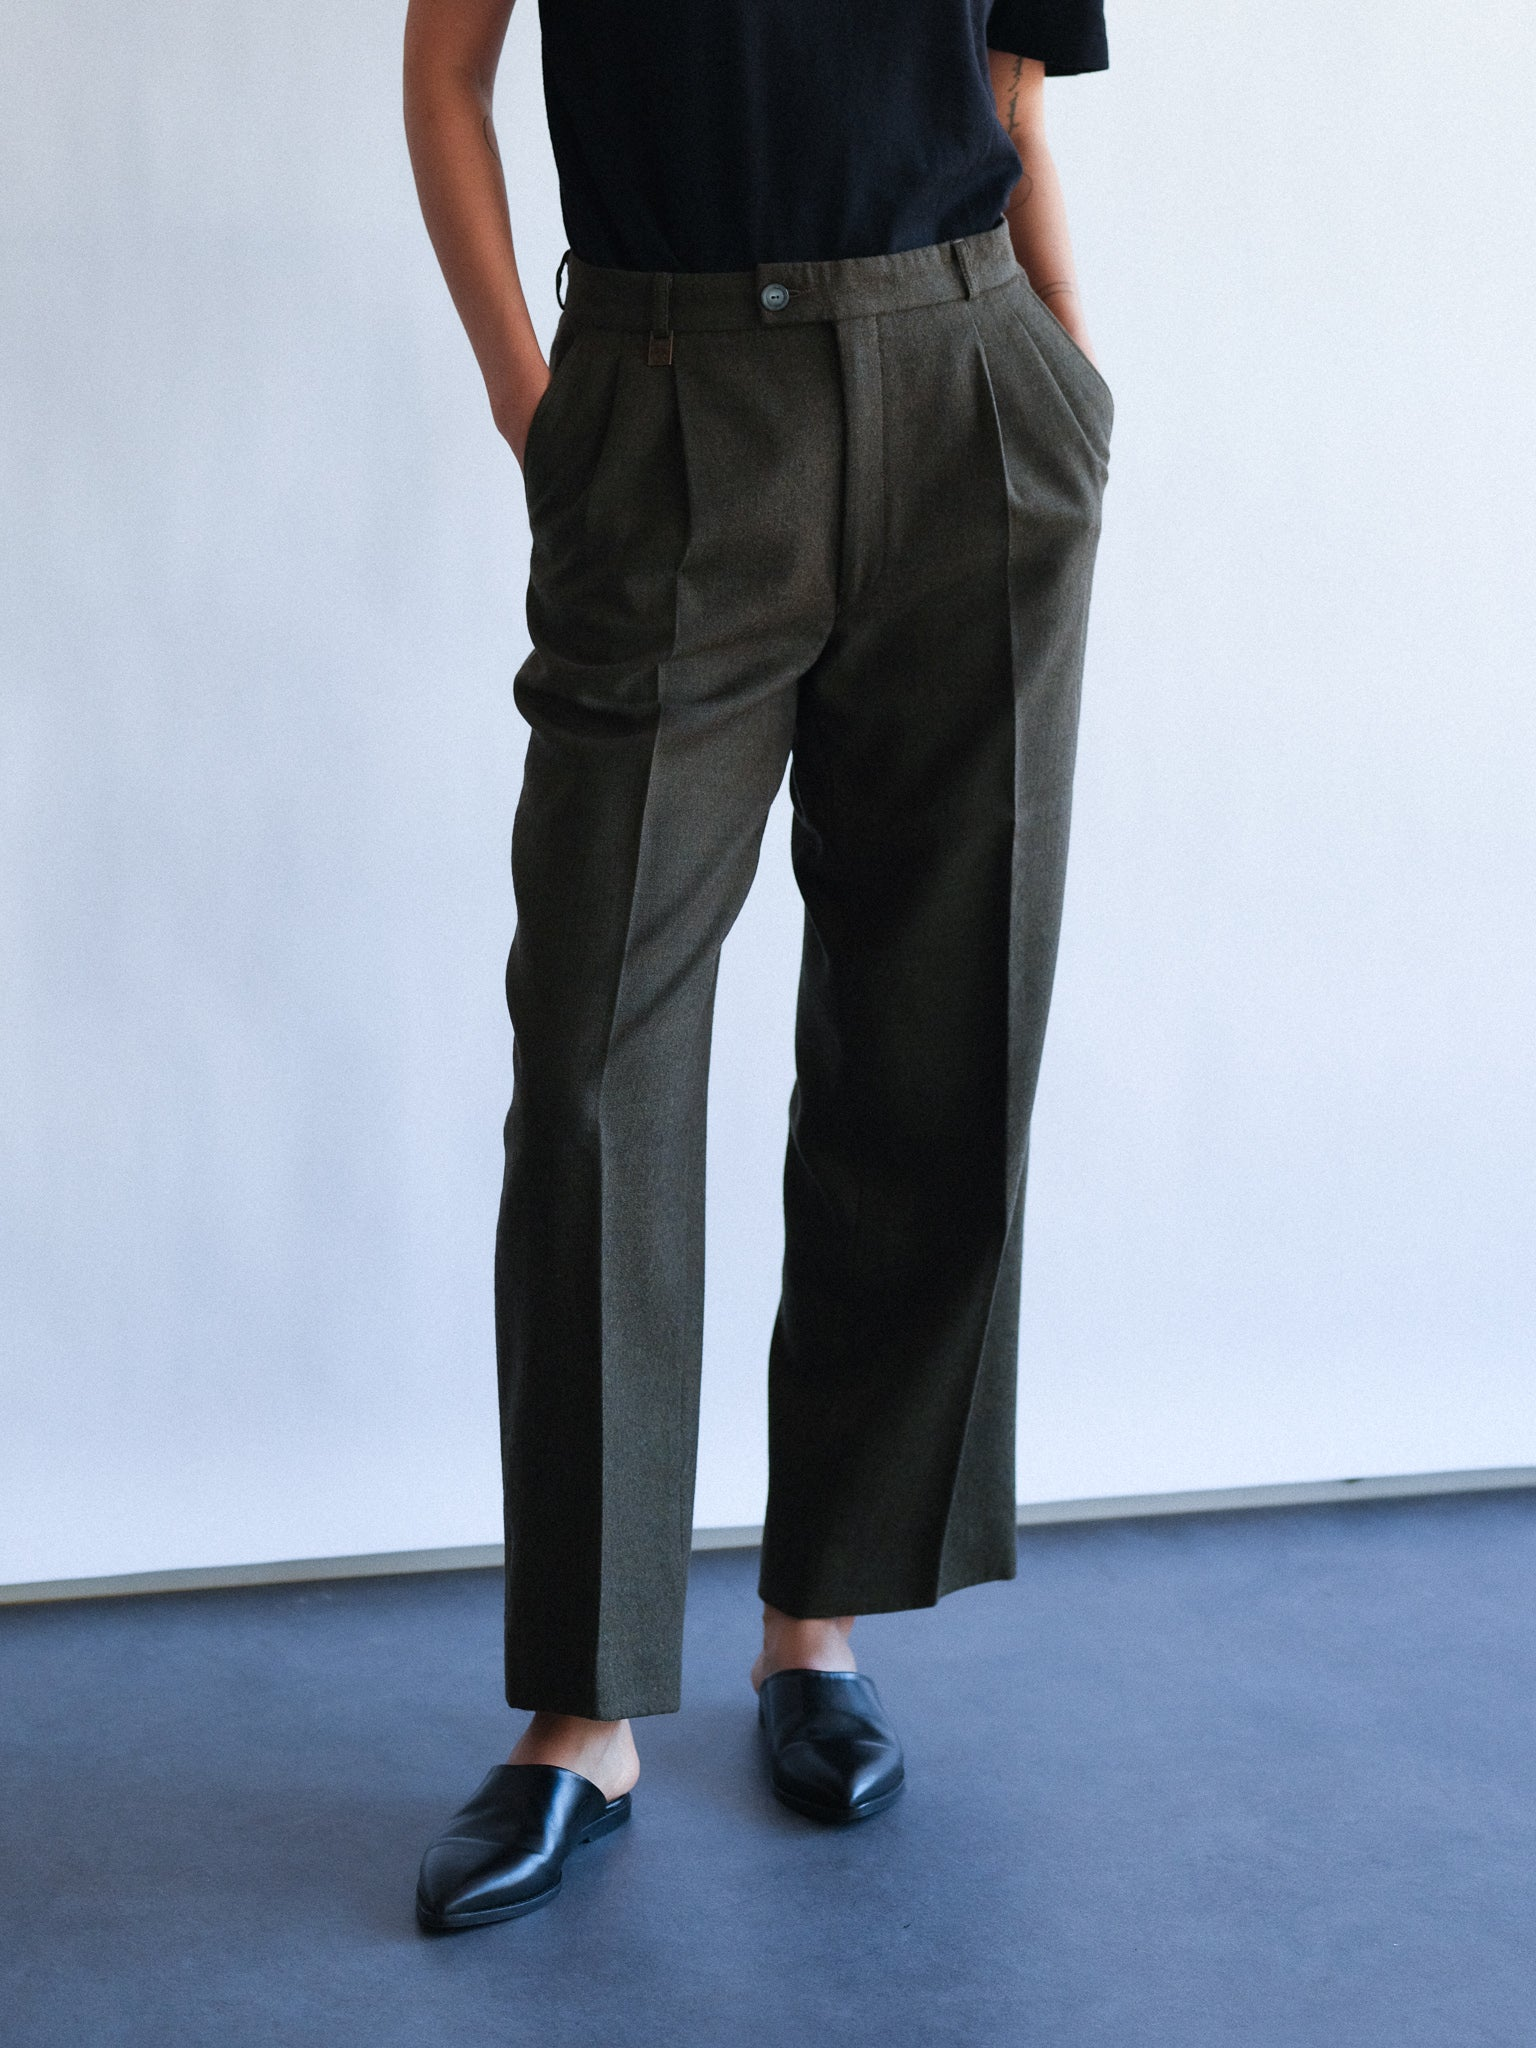 Cacharel wool trousers